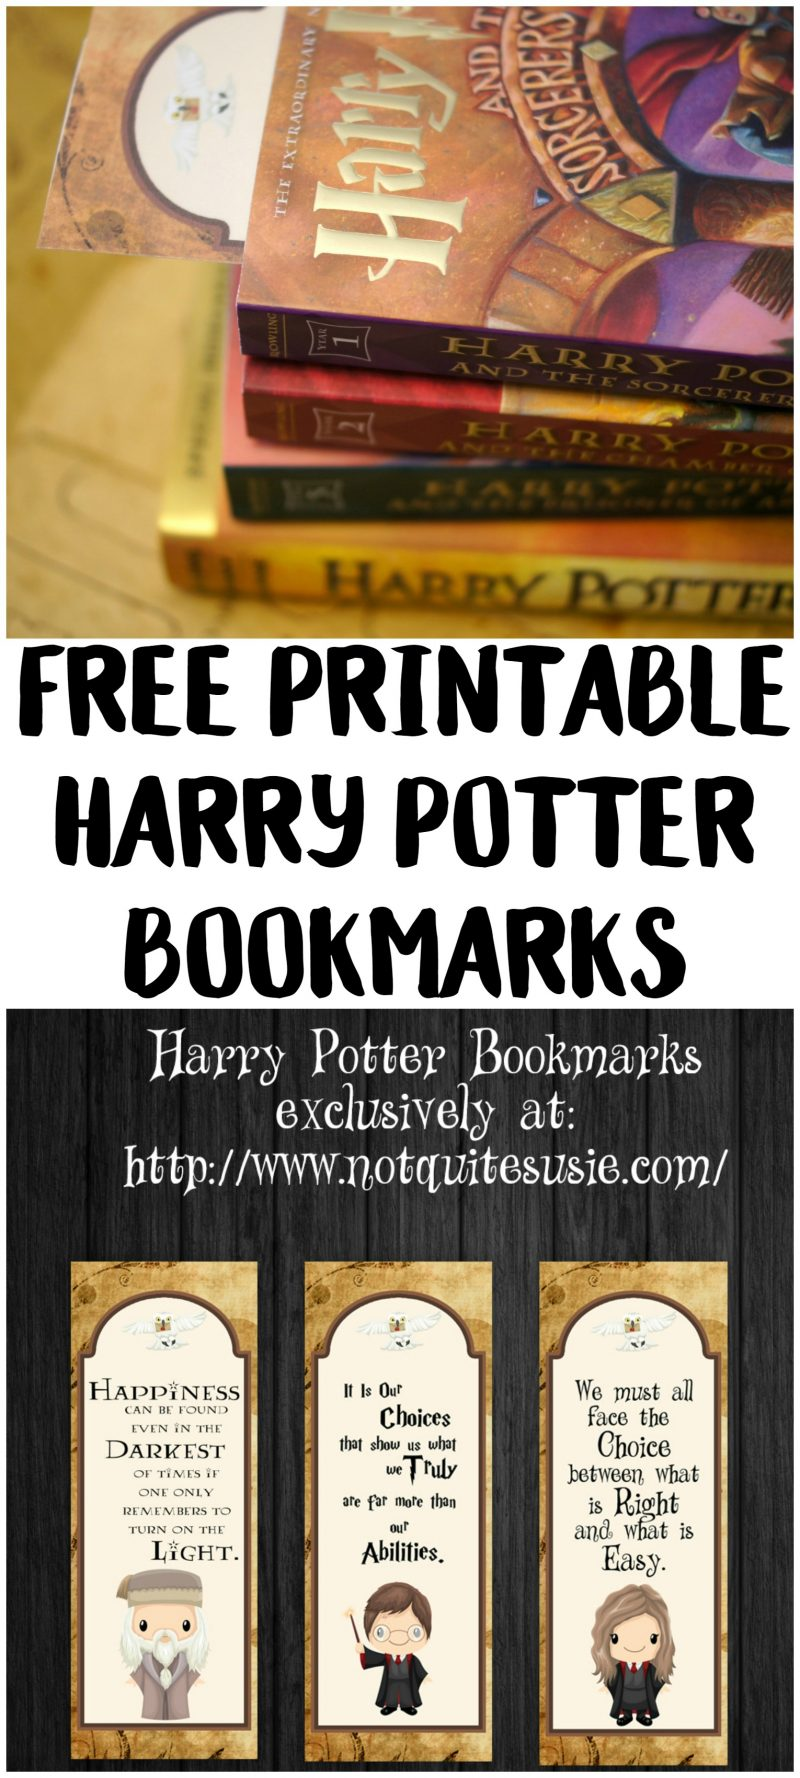 Harry Potter Book Free Download : Free printable harry potter bookmarks not quite susie